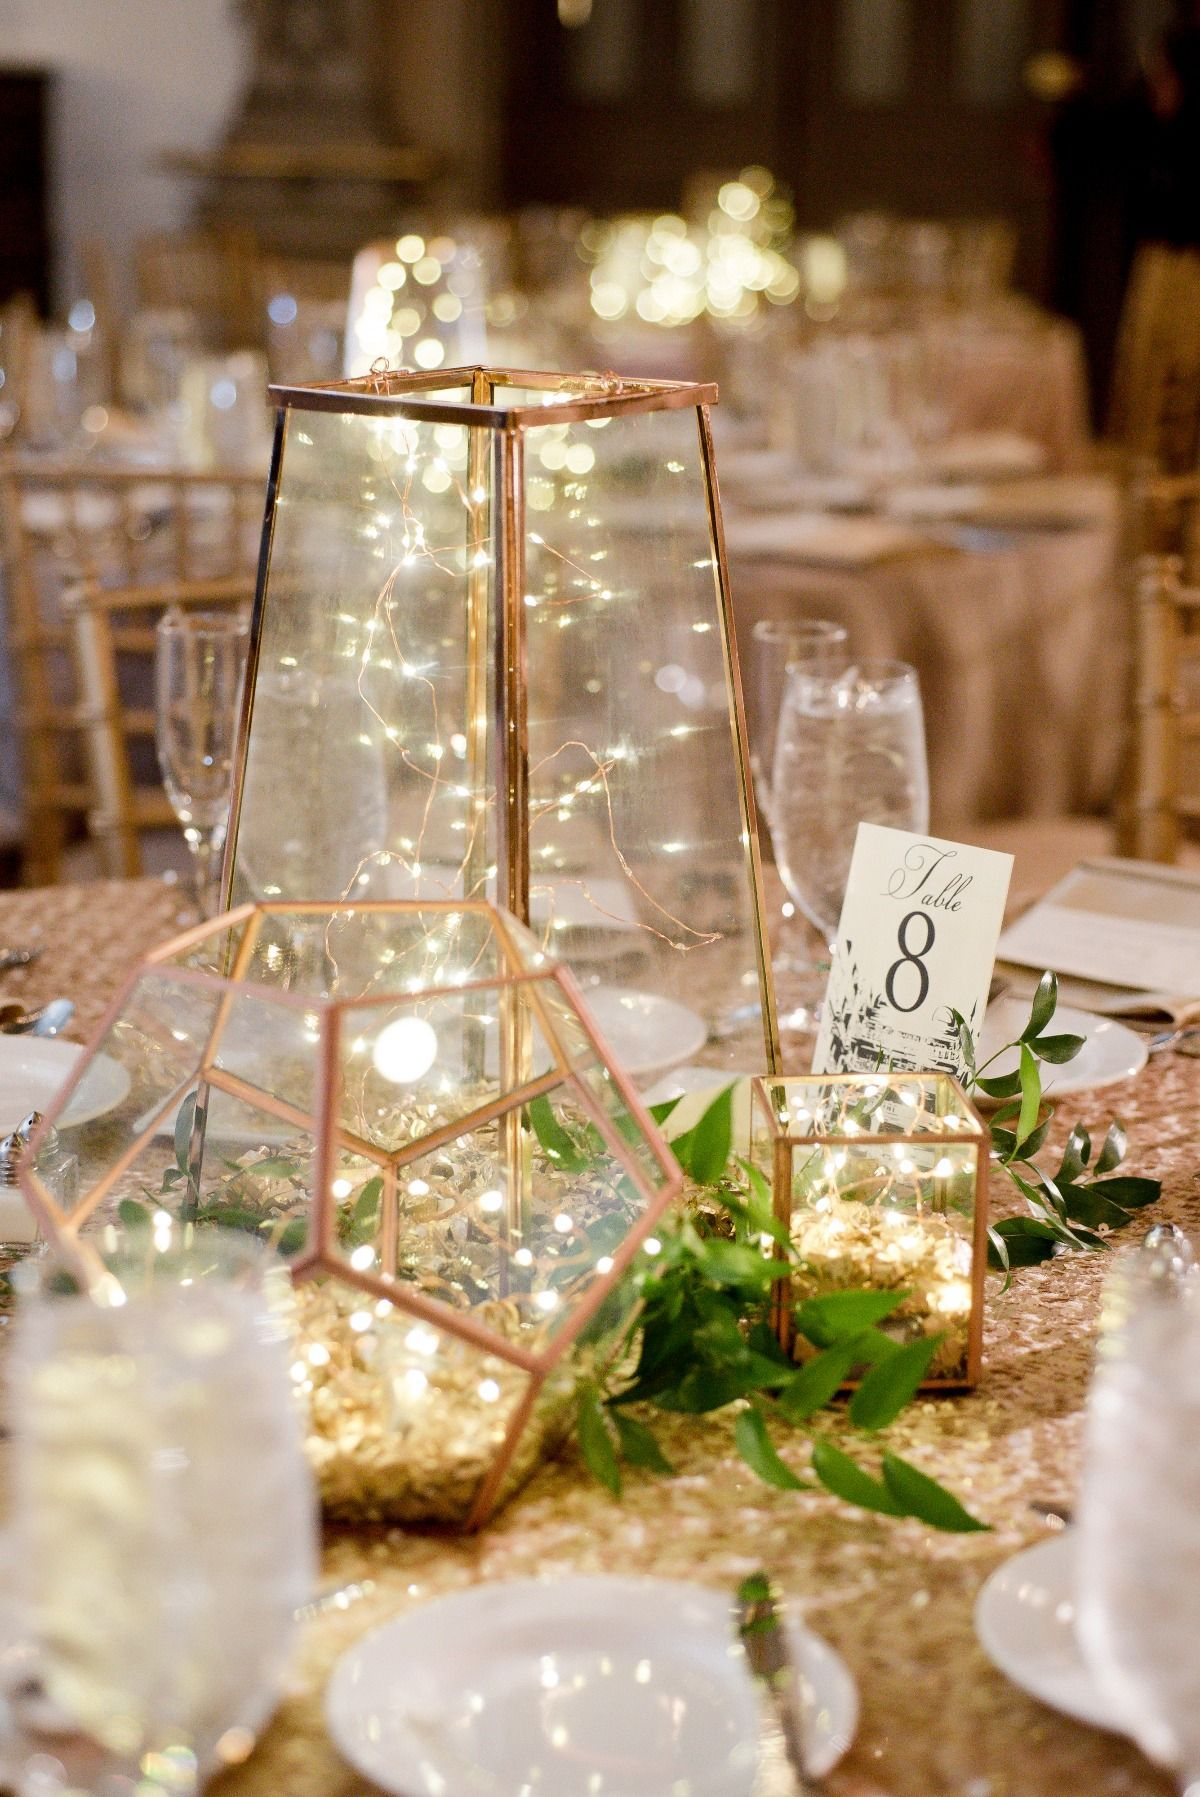 Library Chic Should Definitely Be The Latest Wedding Theme #Interior #decoration